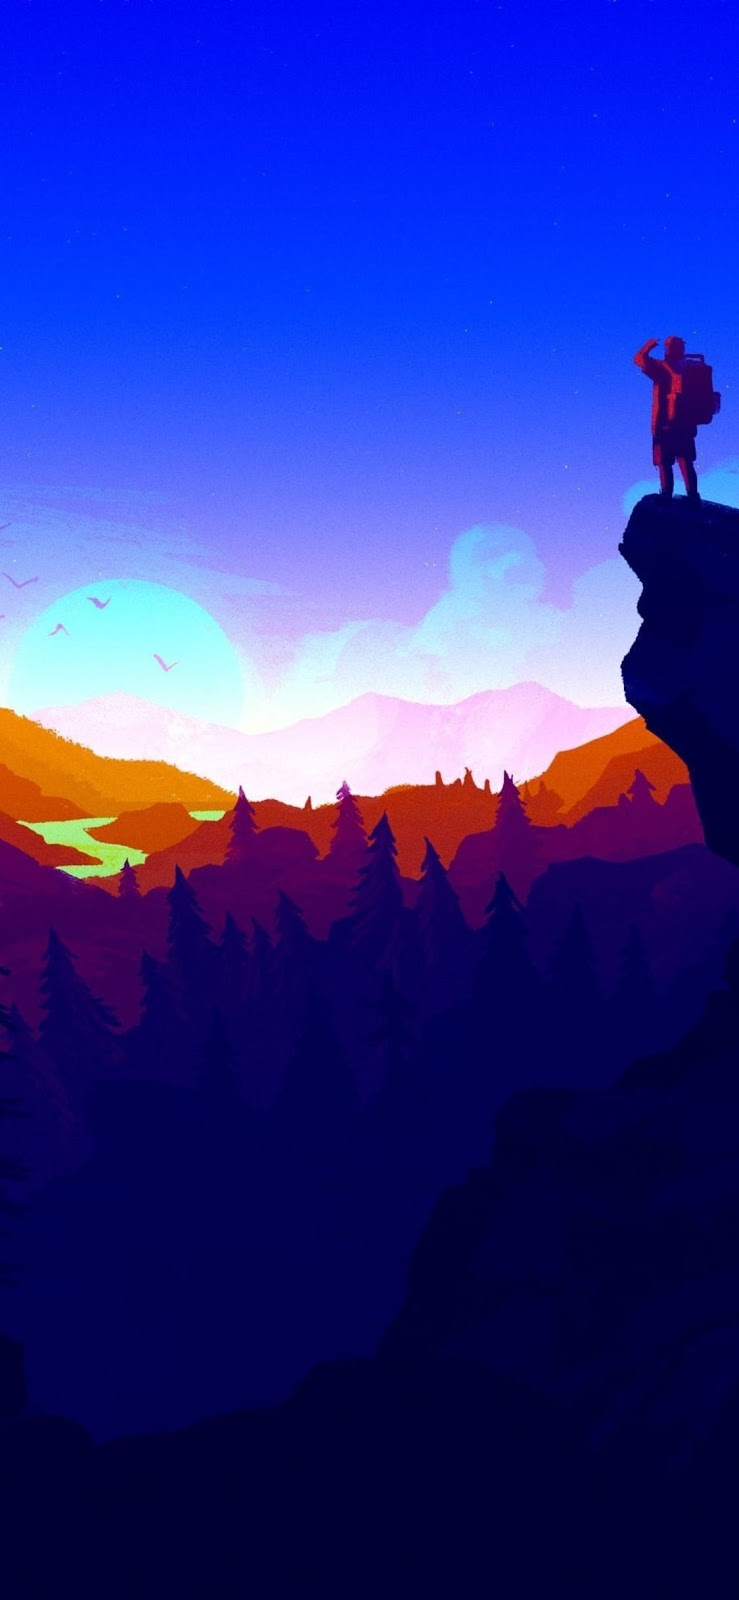 Iphone X 4k Firewatch Wallpaper Download 4k Wallpaper Iphone Hd Wallpaper Iphone Iphone Wallpaper High Quality